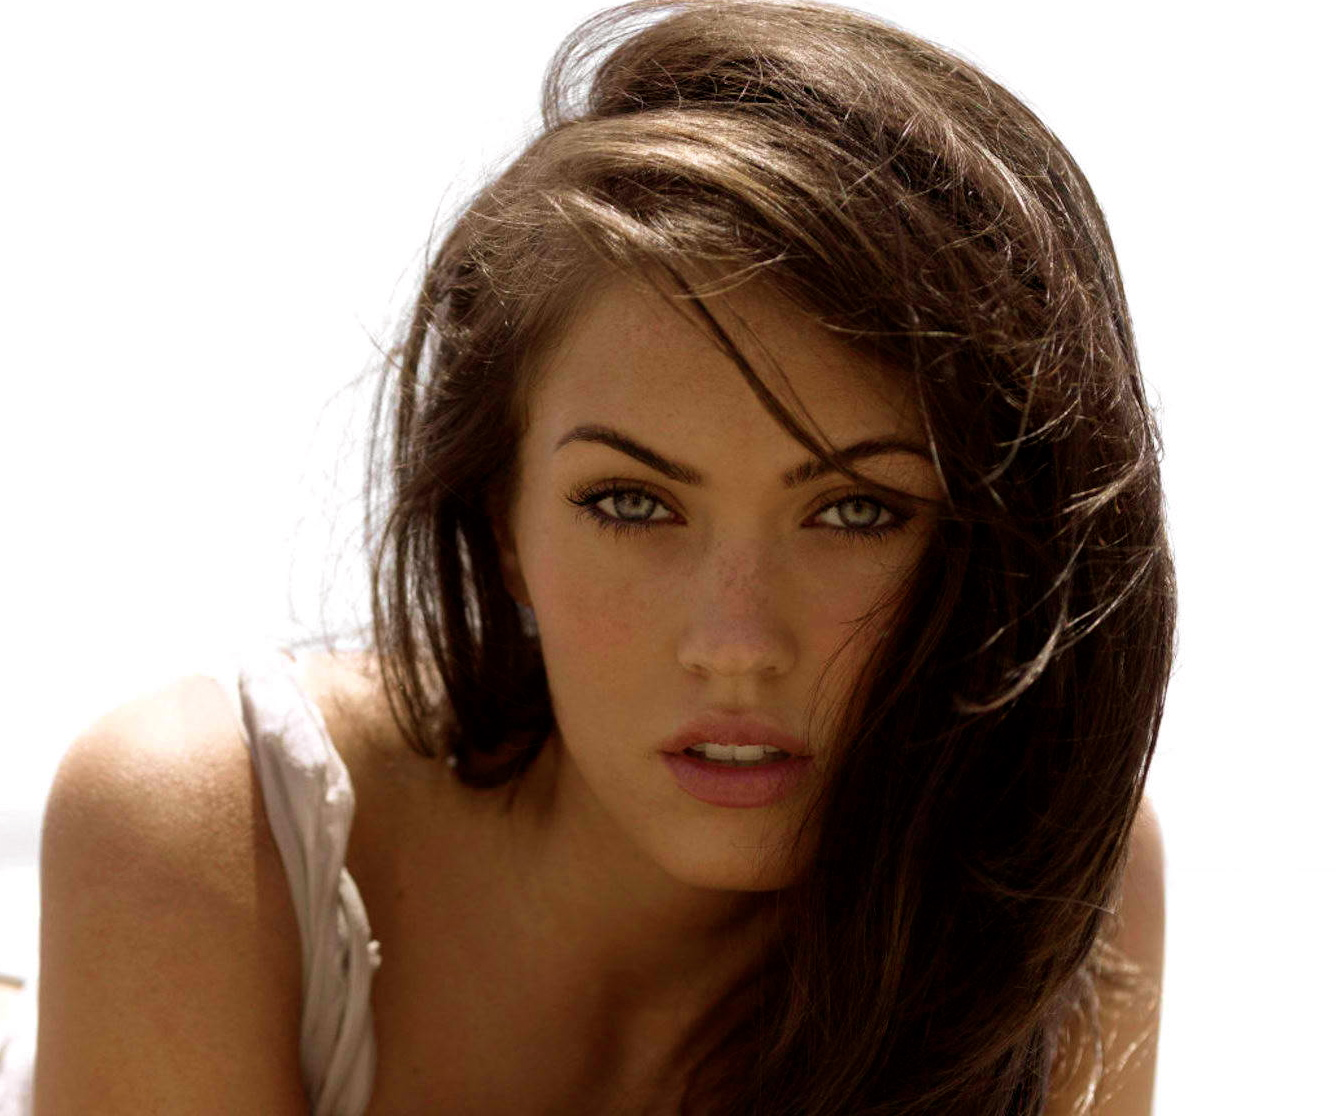 Megan Fox Transformers 4 Michael Bay Megan Fox Back For Transformers 4